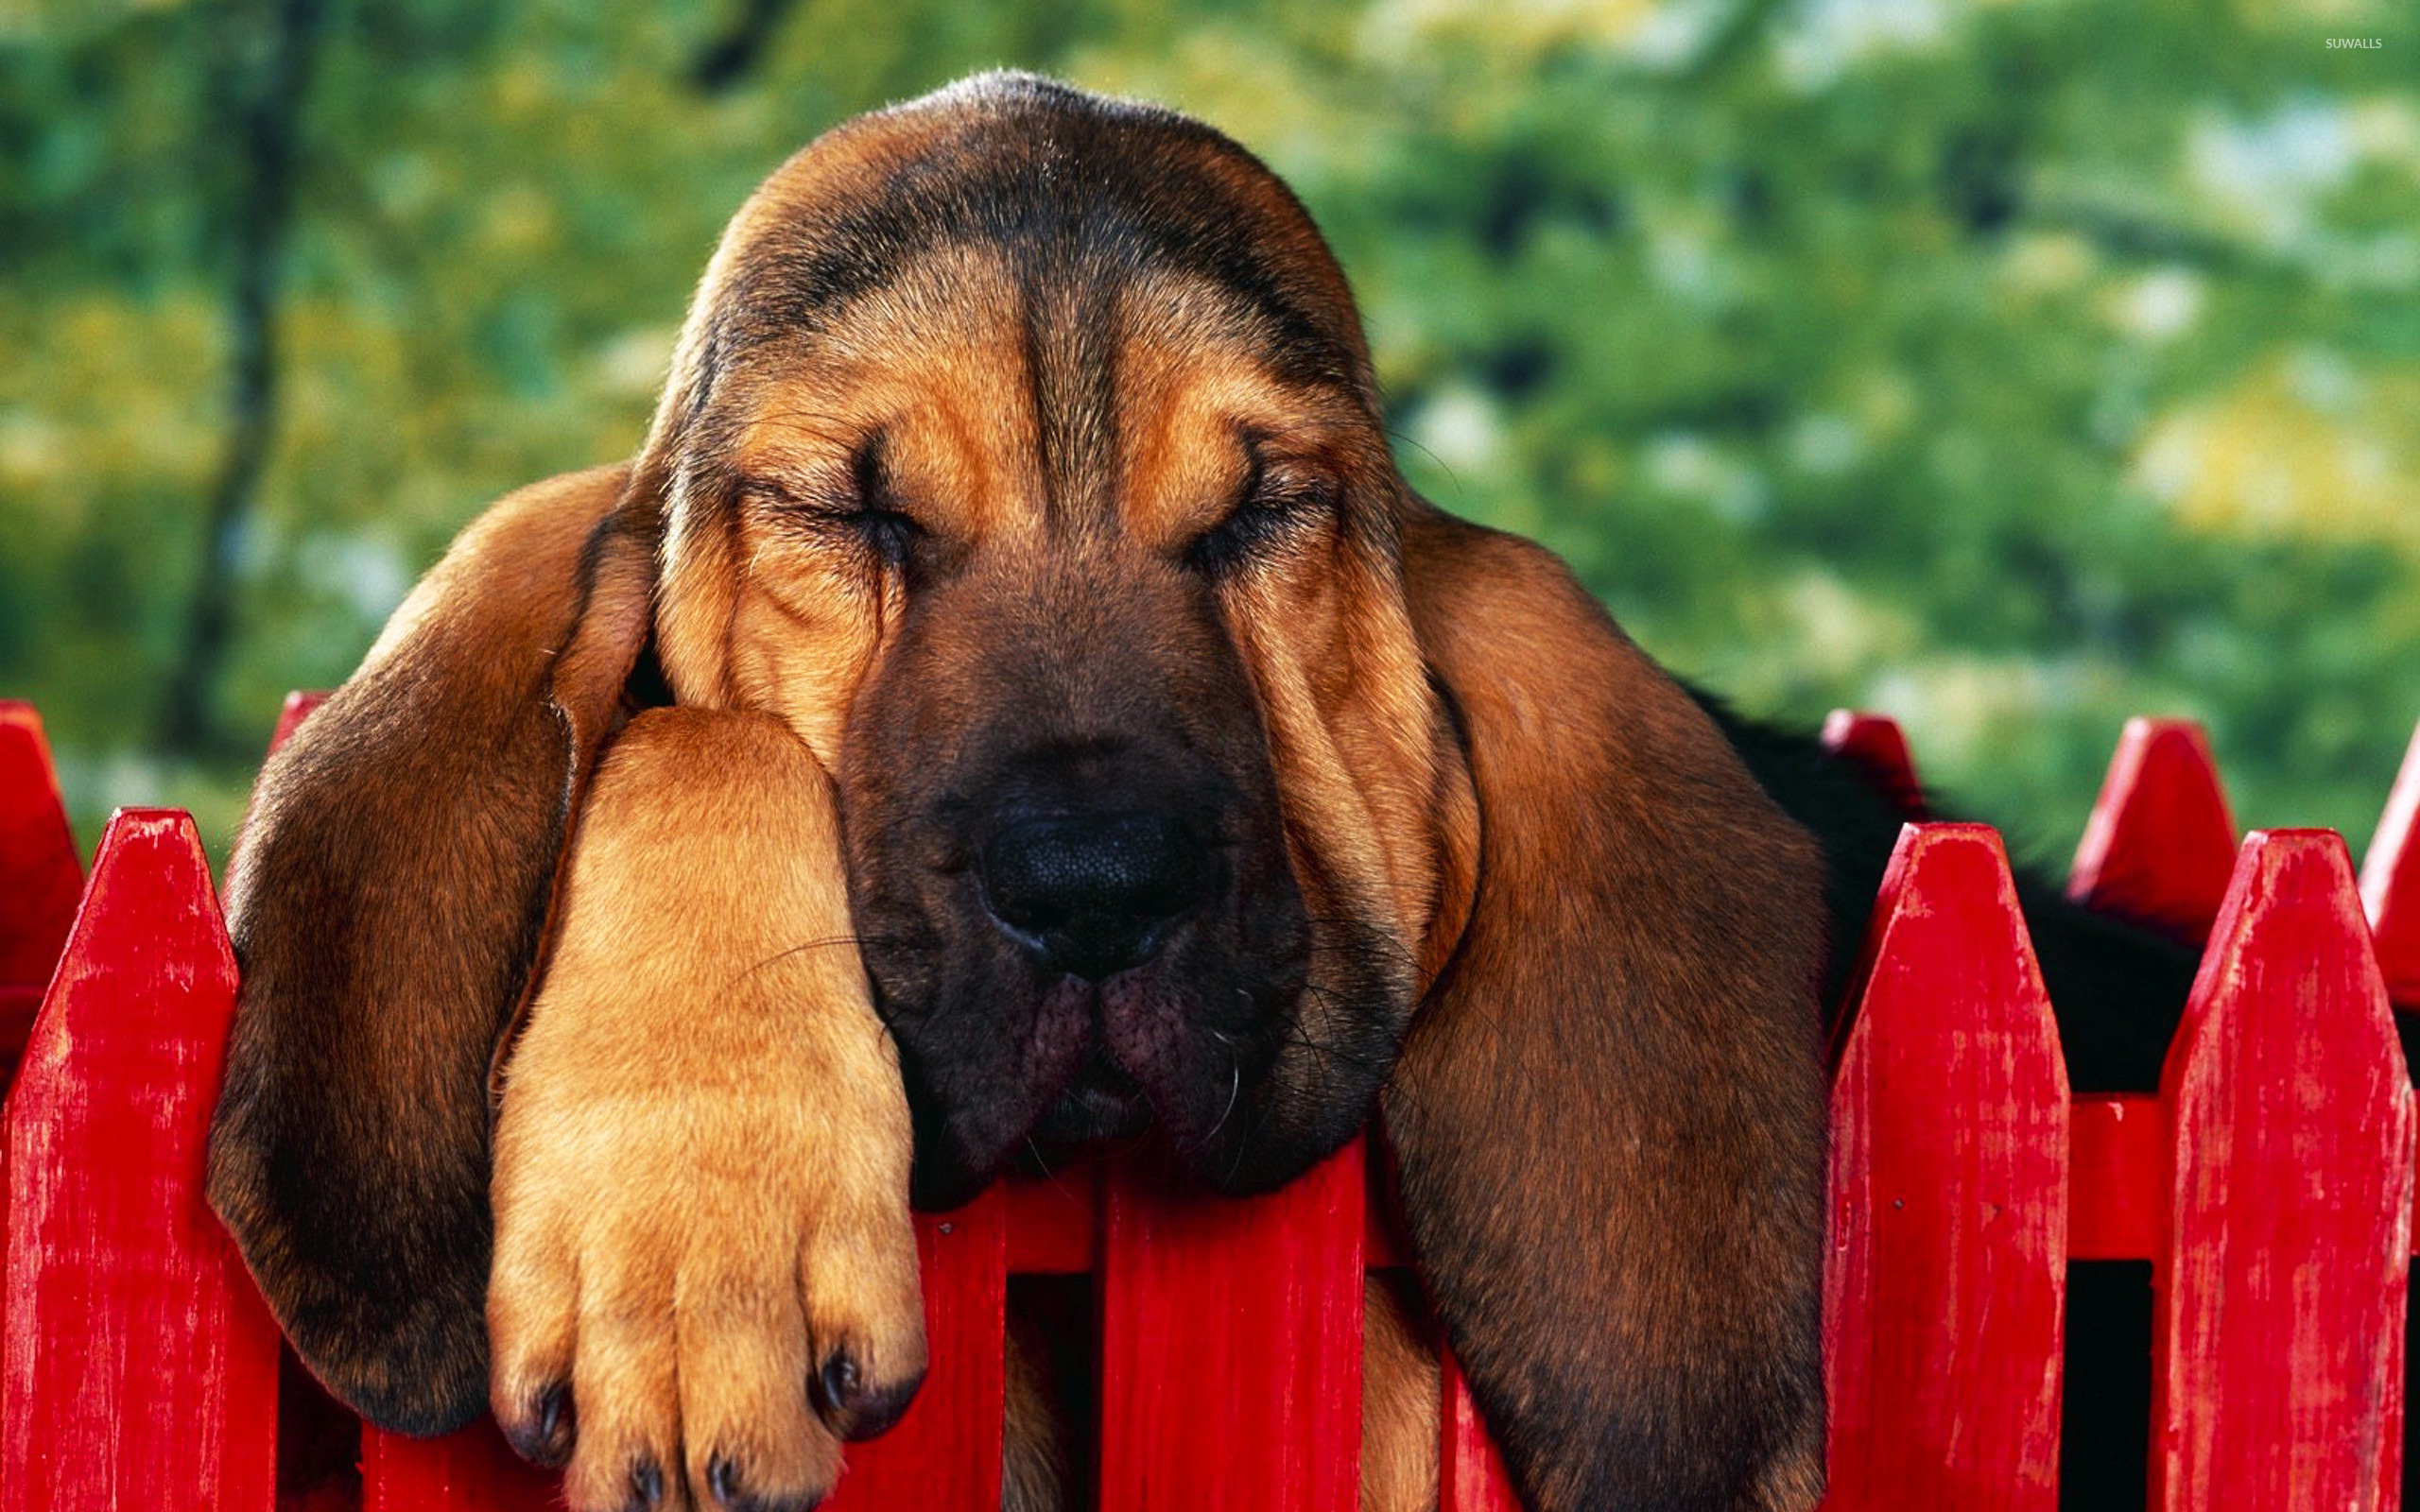 Bloodhound puppy wallpaper   Animal wallpapers   21144 2560x1600